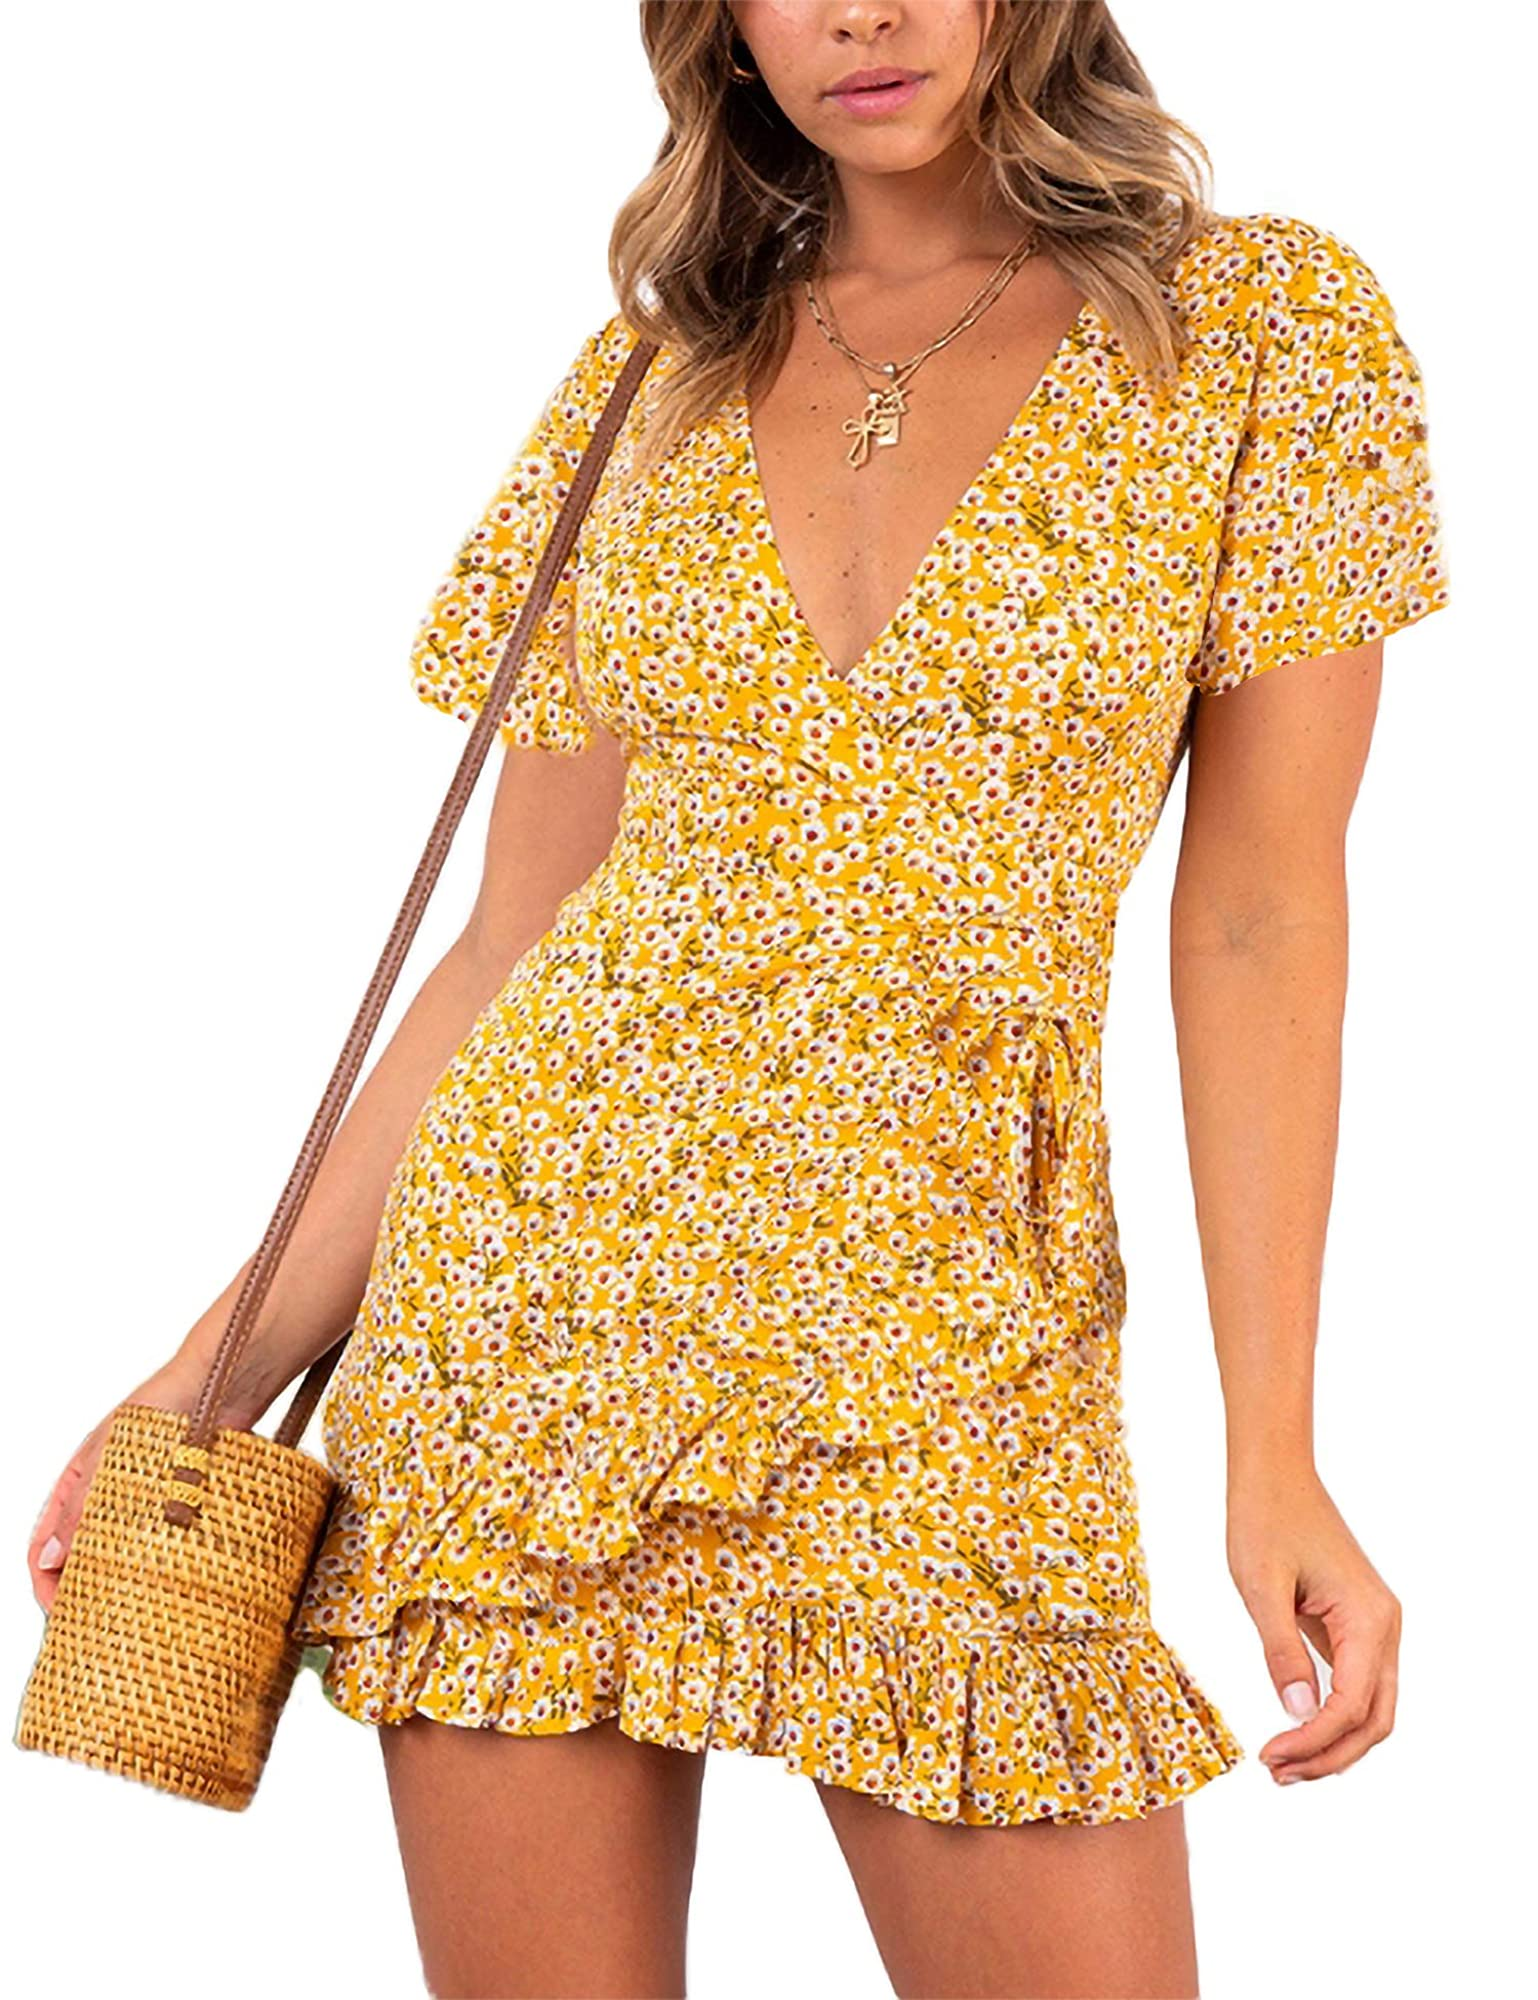 Casual Summer Wear Short Dresses